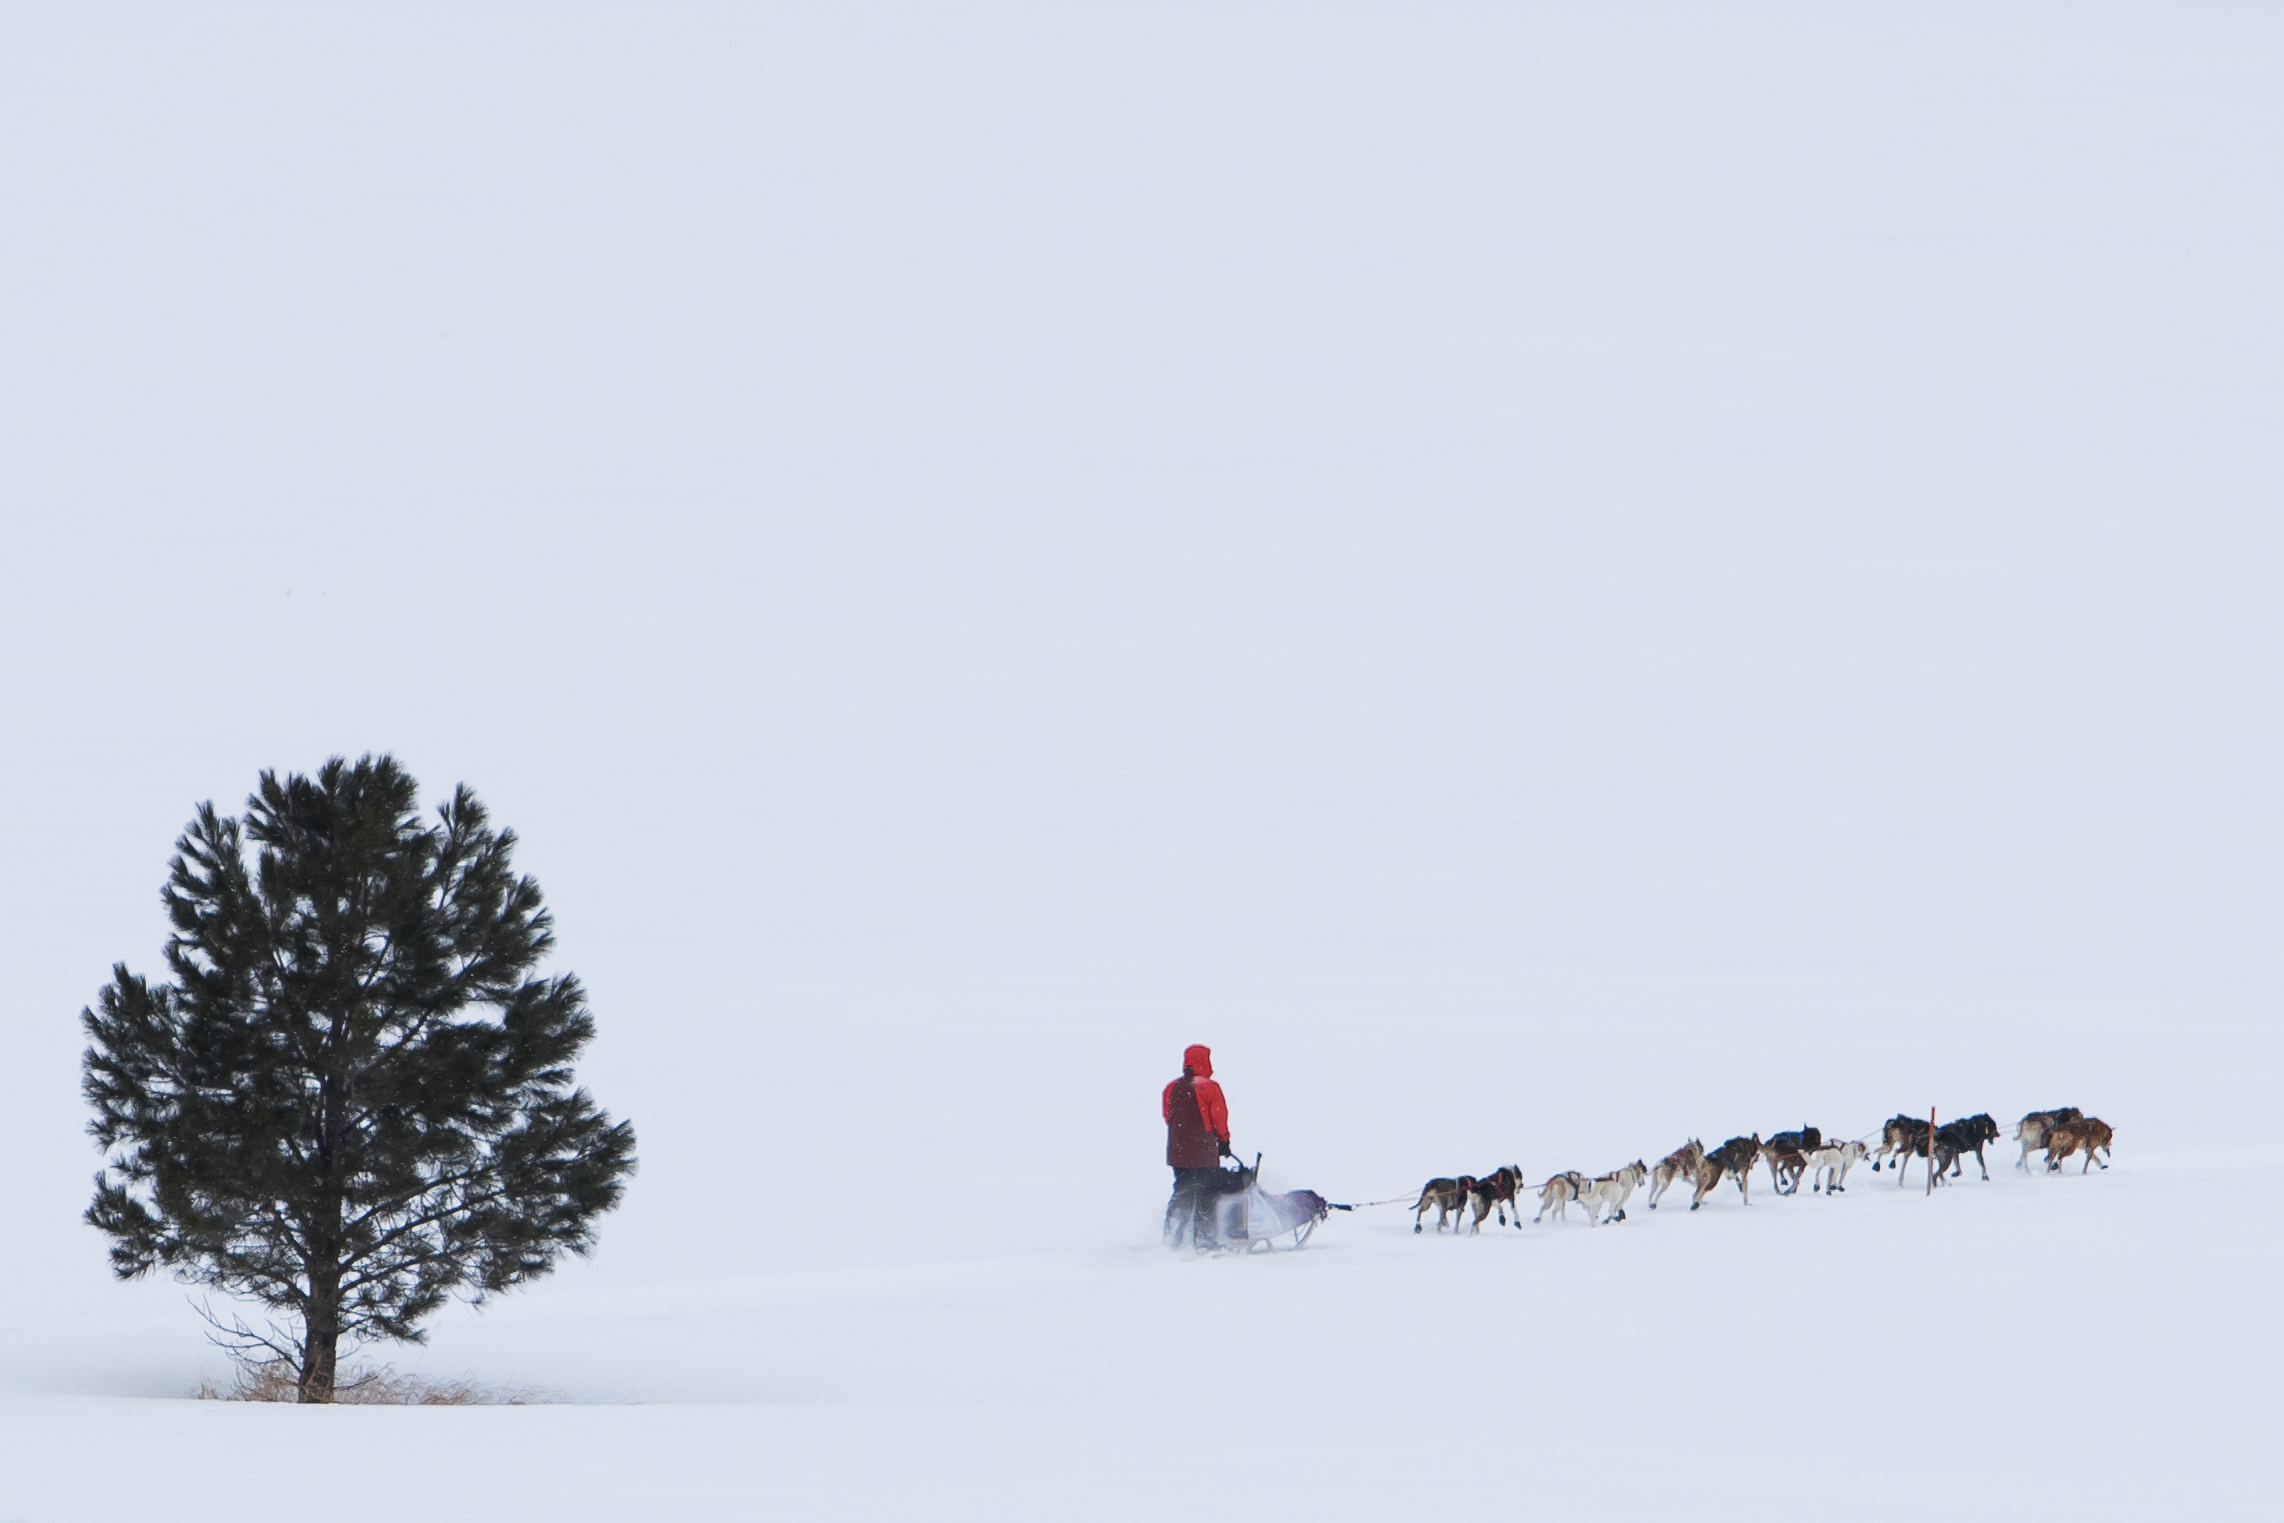 A musher makes his way through the course during the Race to the Sky sled dog races in Lincoln, Mont. on Feb. 10, 2018. (Lacey Young, Missoulian & Helena Independent Record)